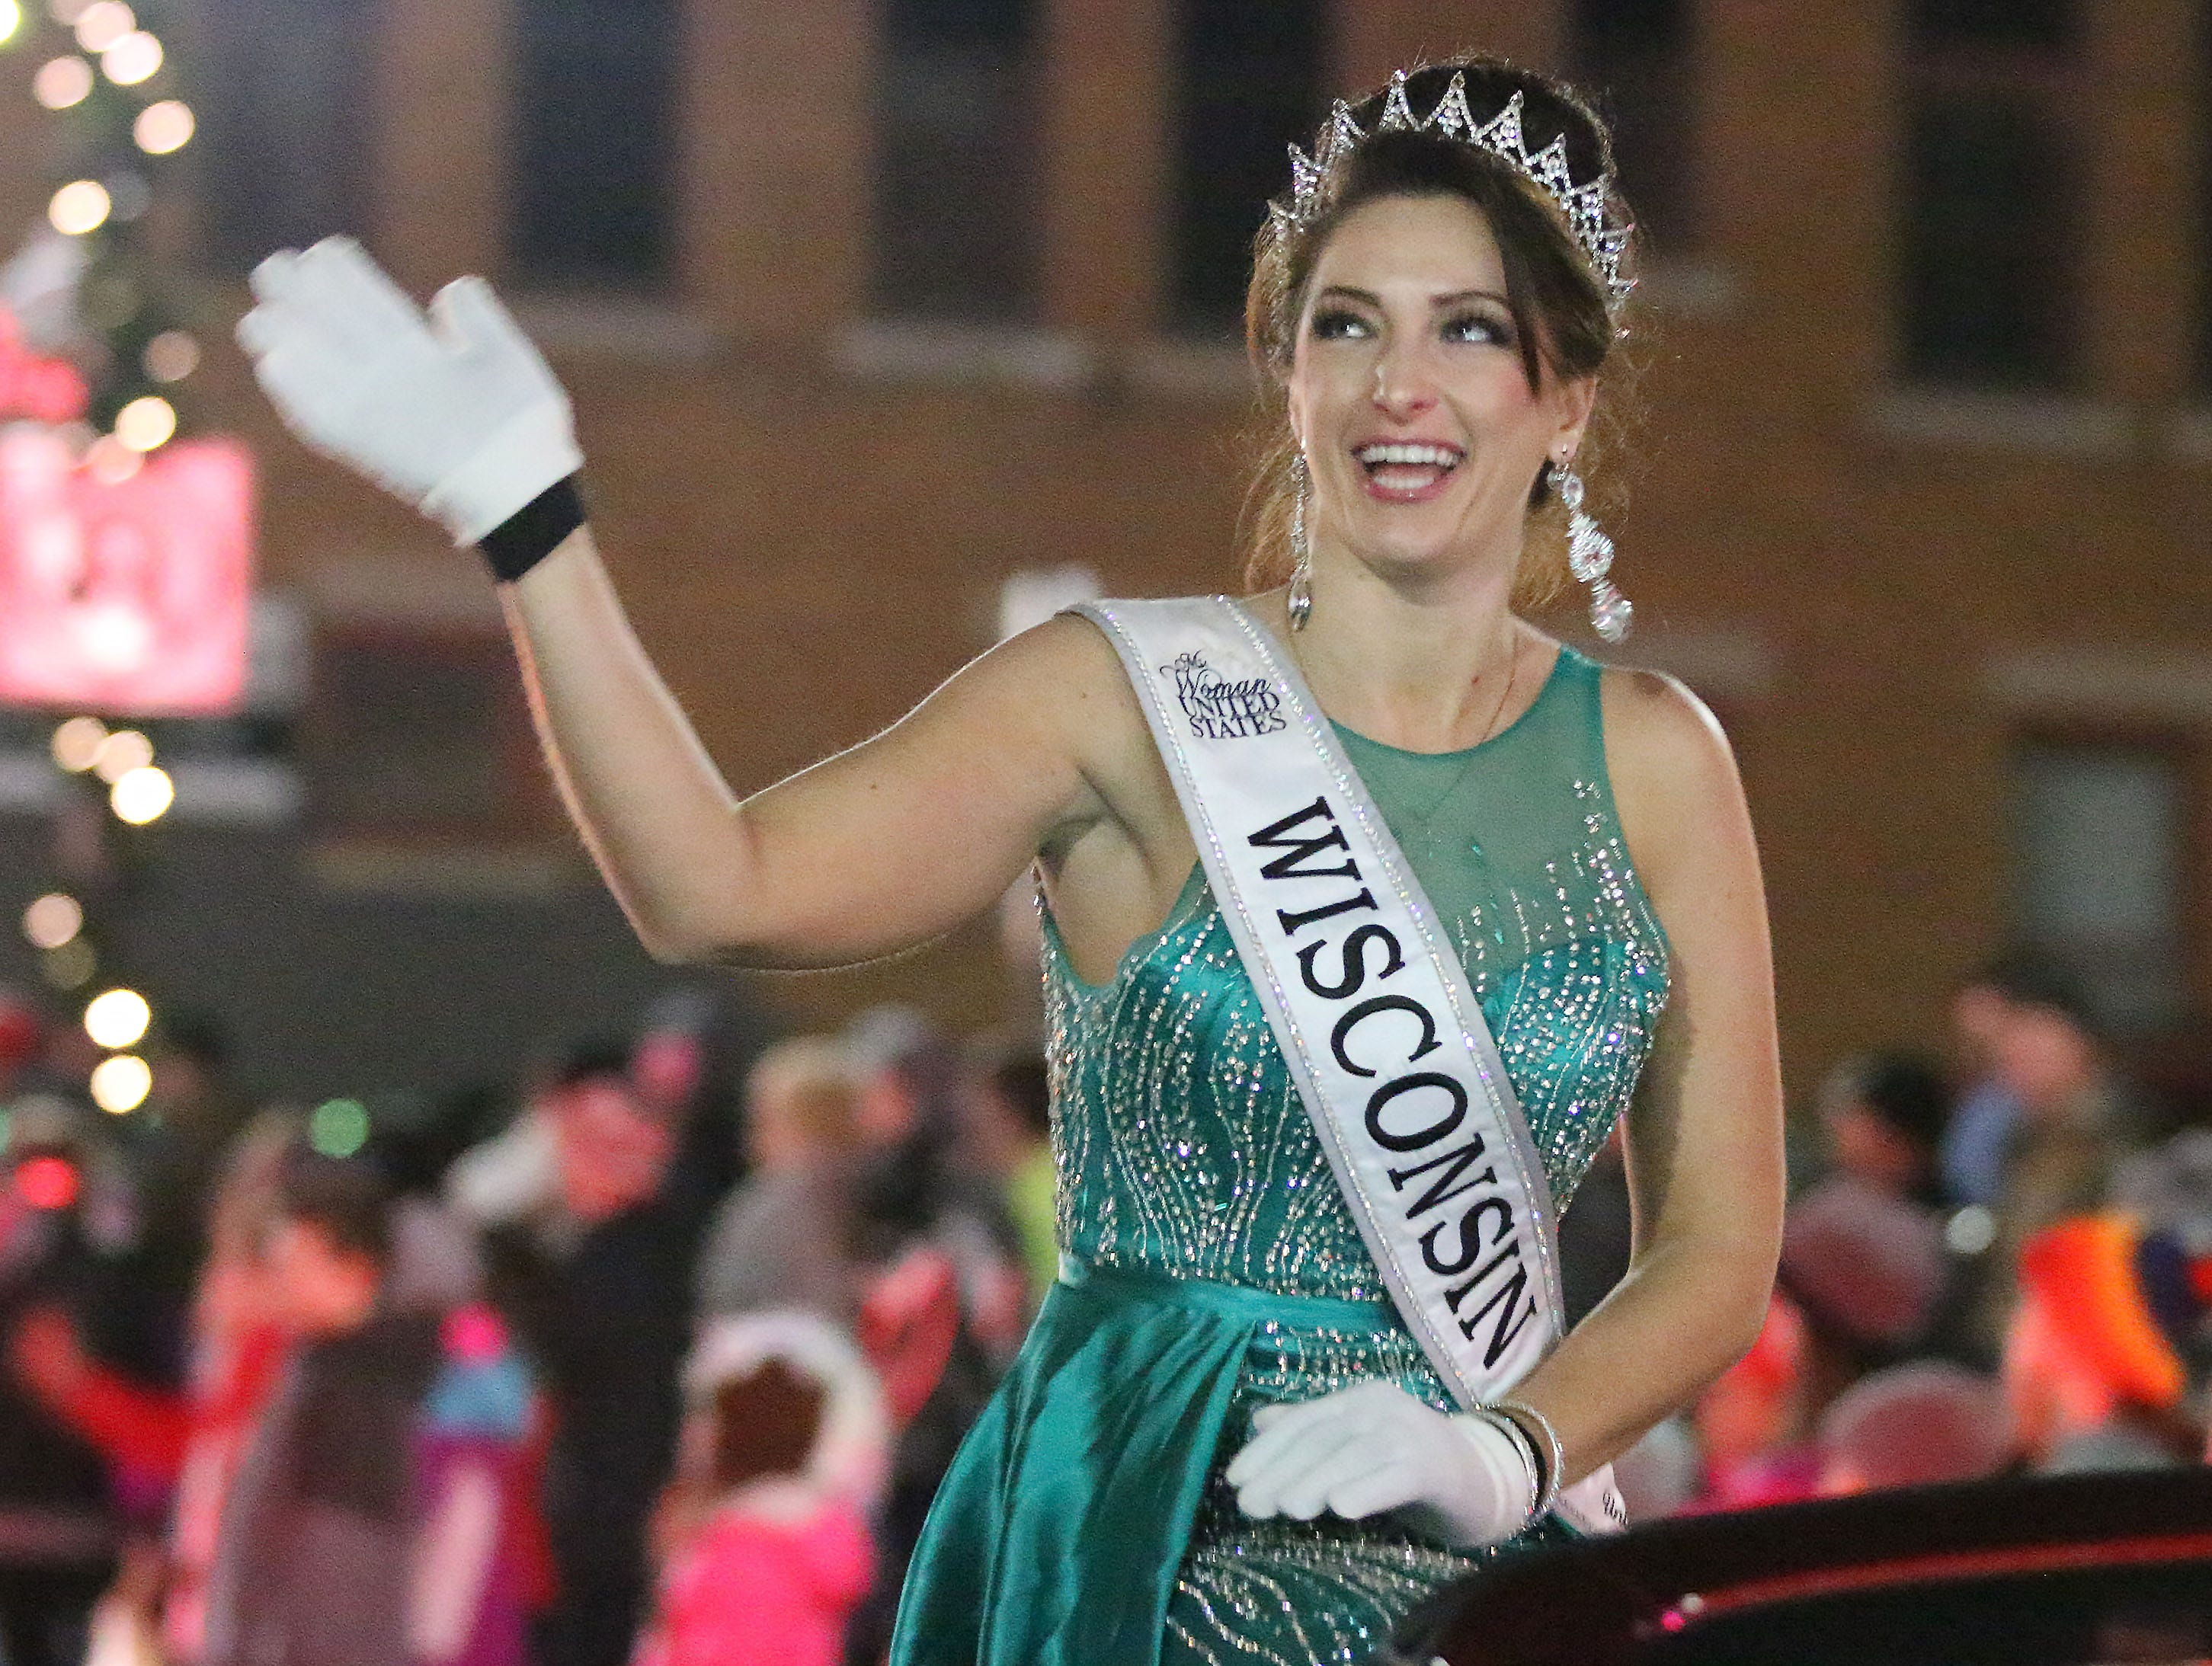 Ms. Woman United States Wisconsin Katherin Rose waves to the crowds at Plymouth Christmas Parade, Friday, November 23, 2018, in Plymouth, Wis.